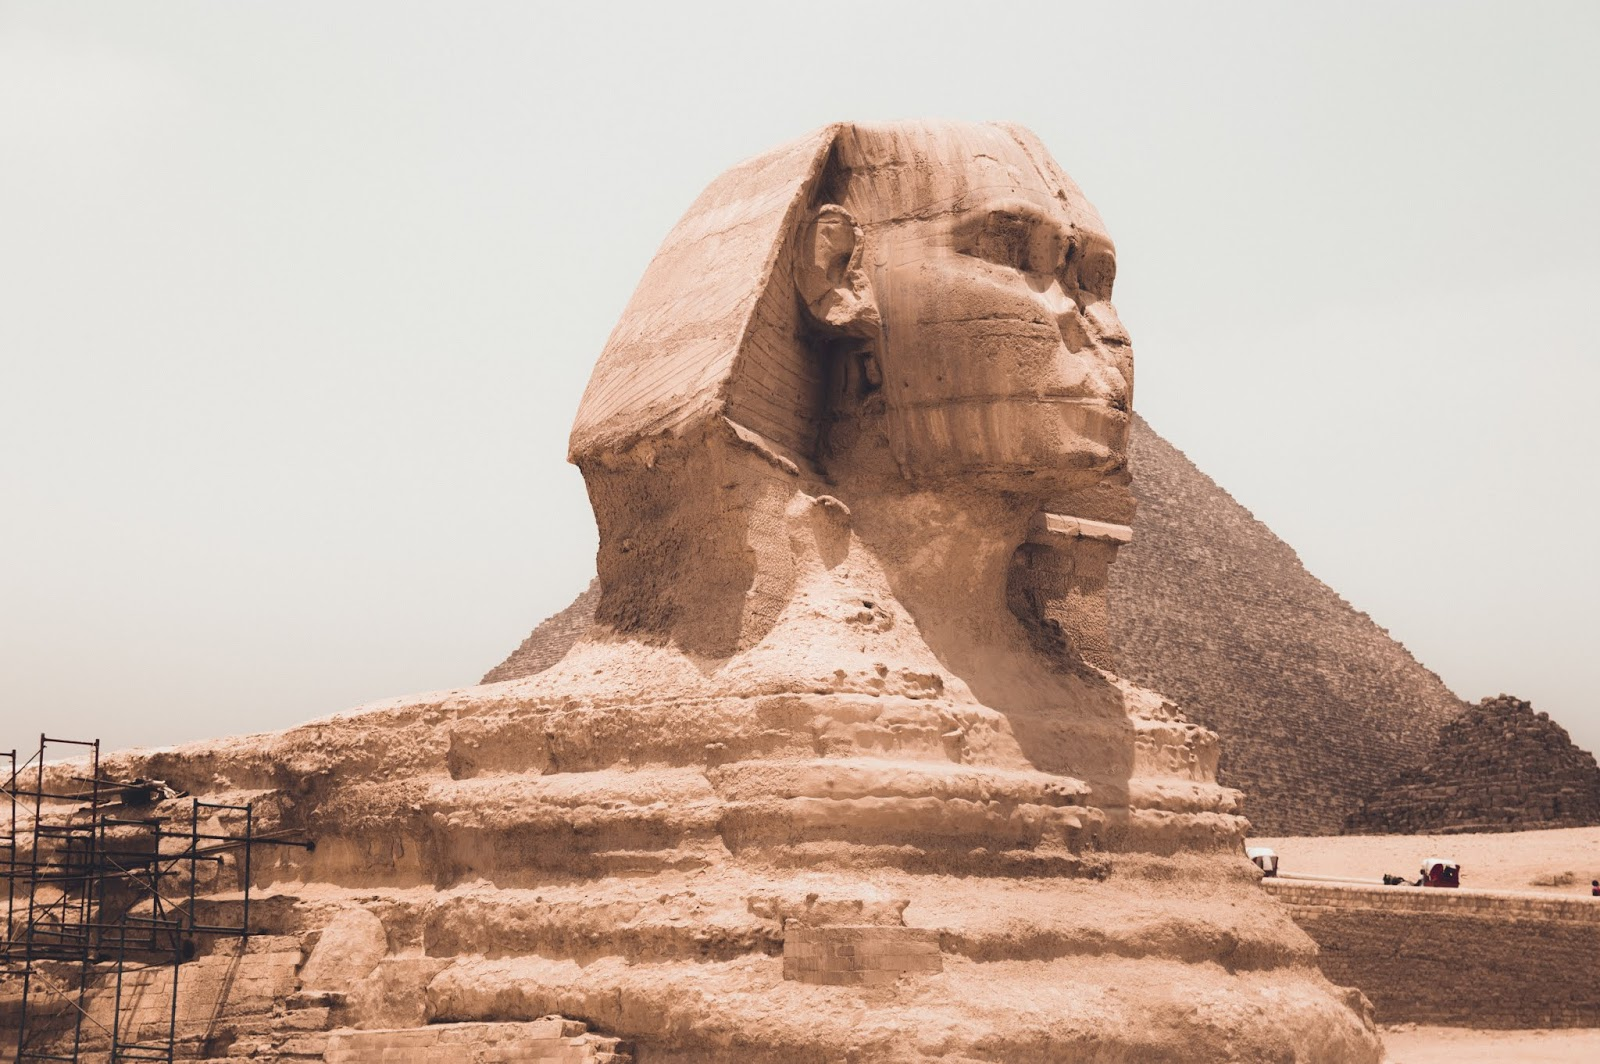 https://www.earthnews95.com/2019/11/about-nile-river.html